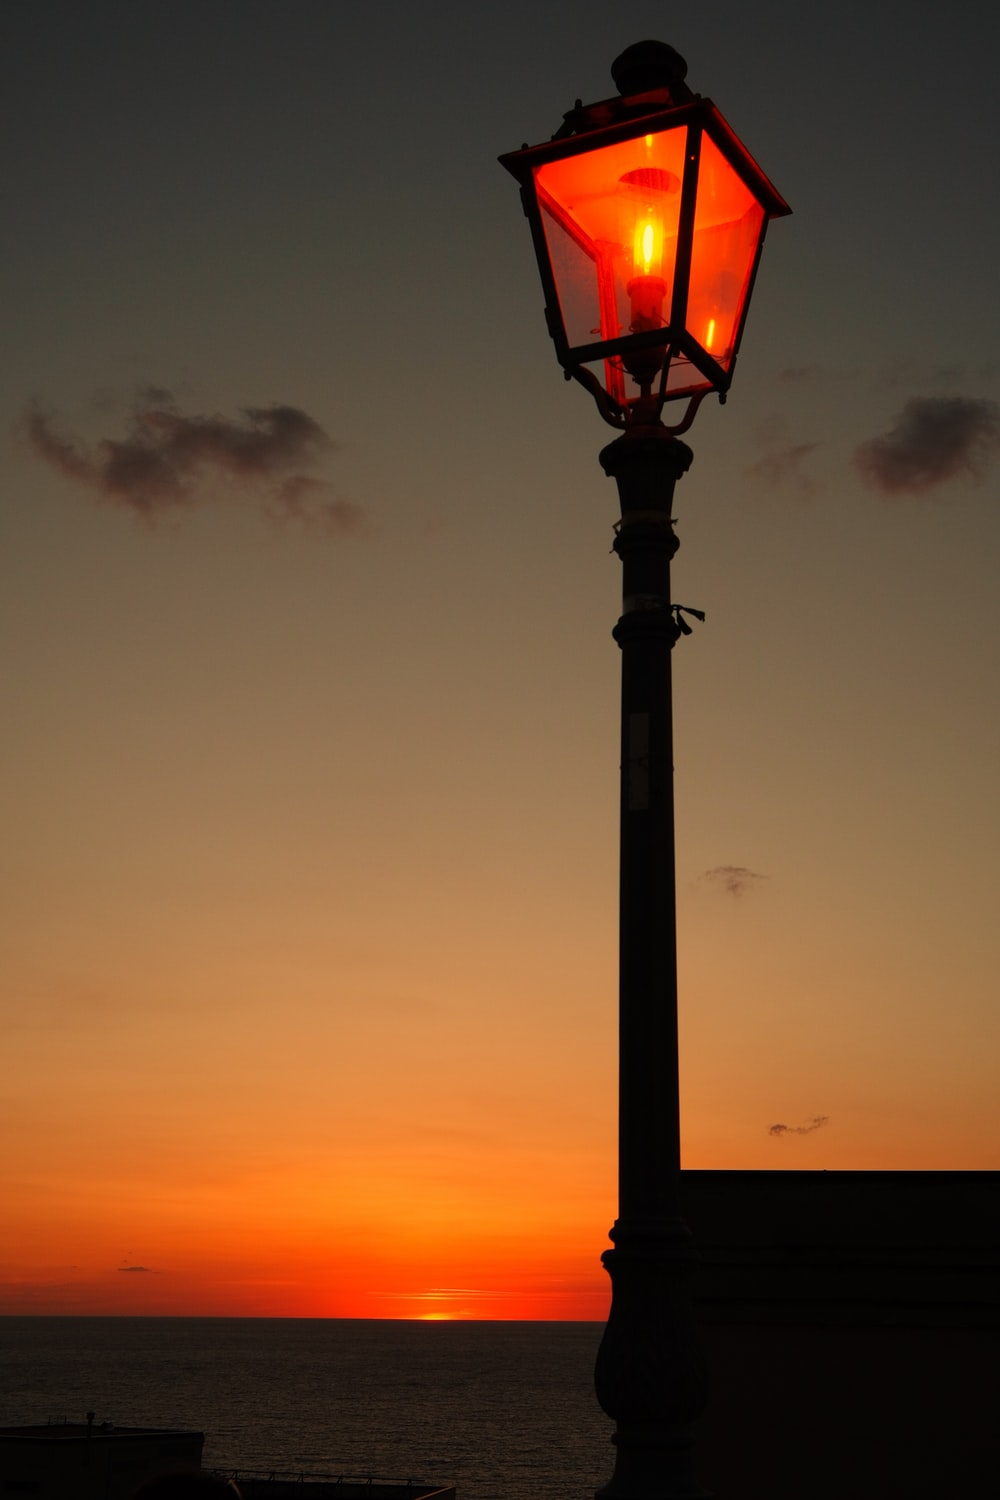 silhouette photography of street light